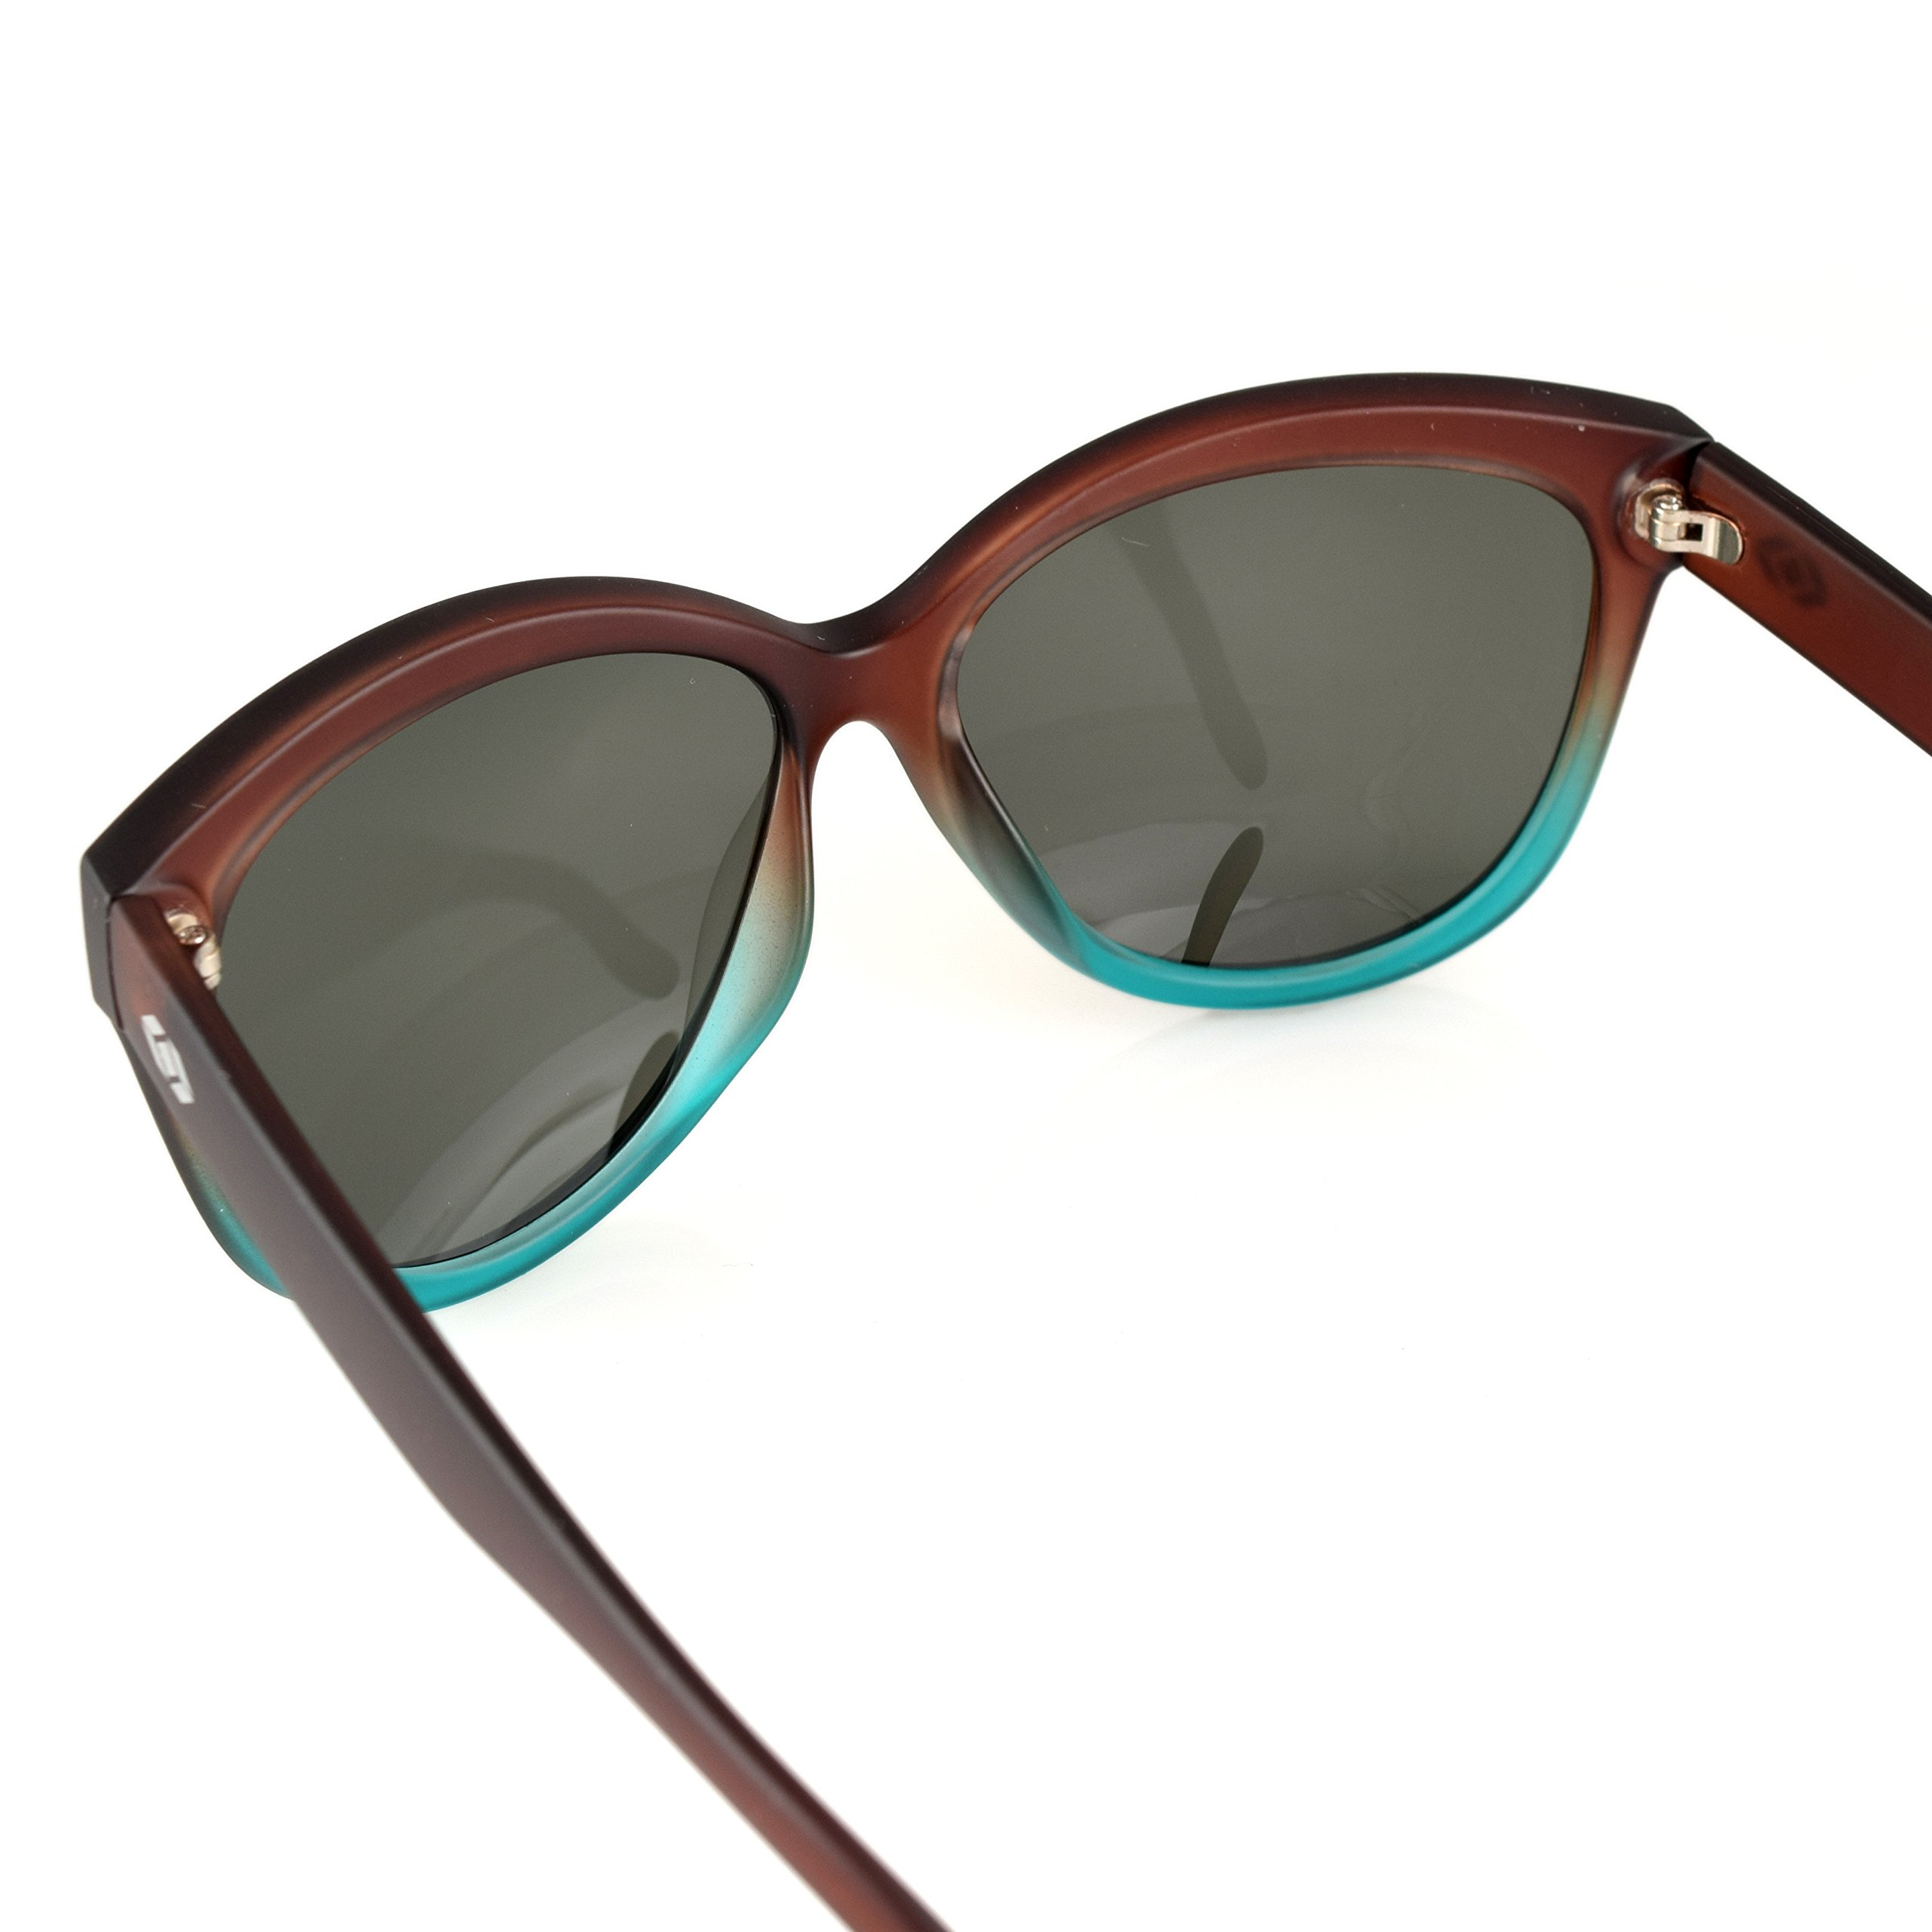 13Fifty Miami Women's Sunglasses, Cat Eye Glasses Brown & Green Fashion Frame, Green Gray Polarized Lenses by 13Fifty (Image #5)